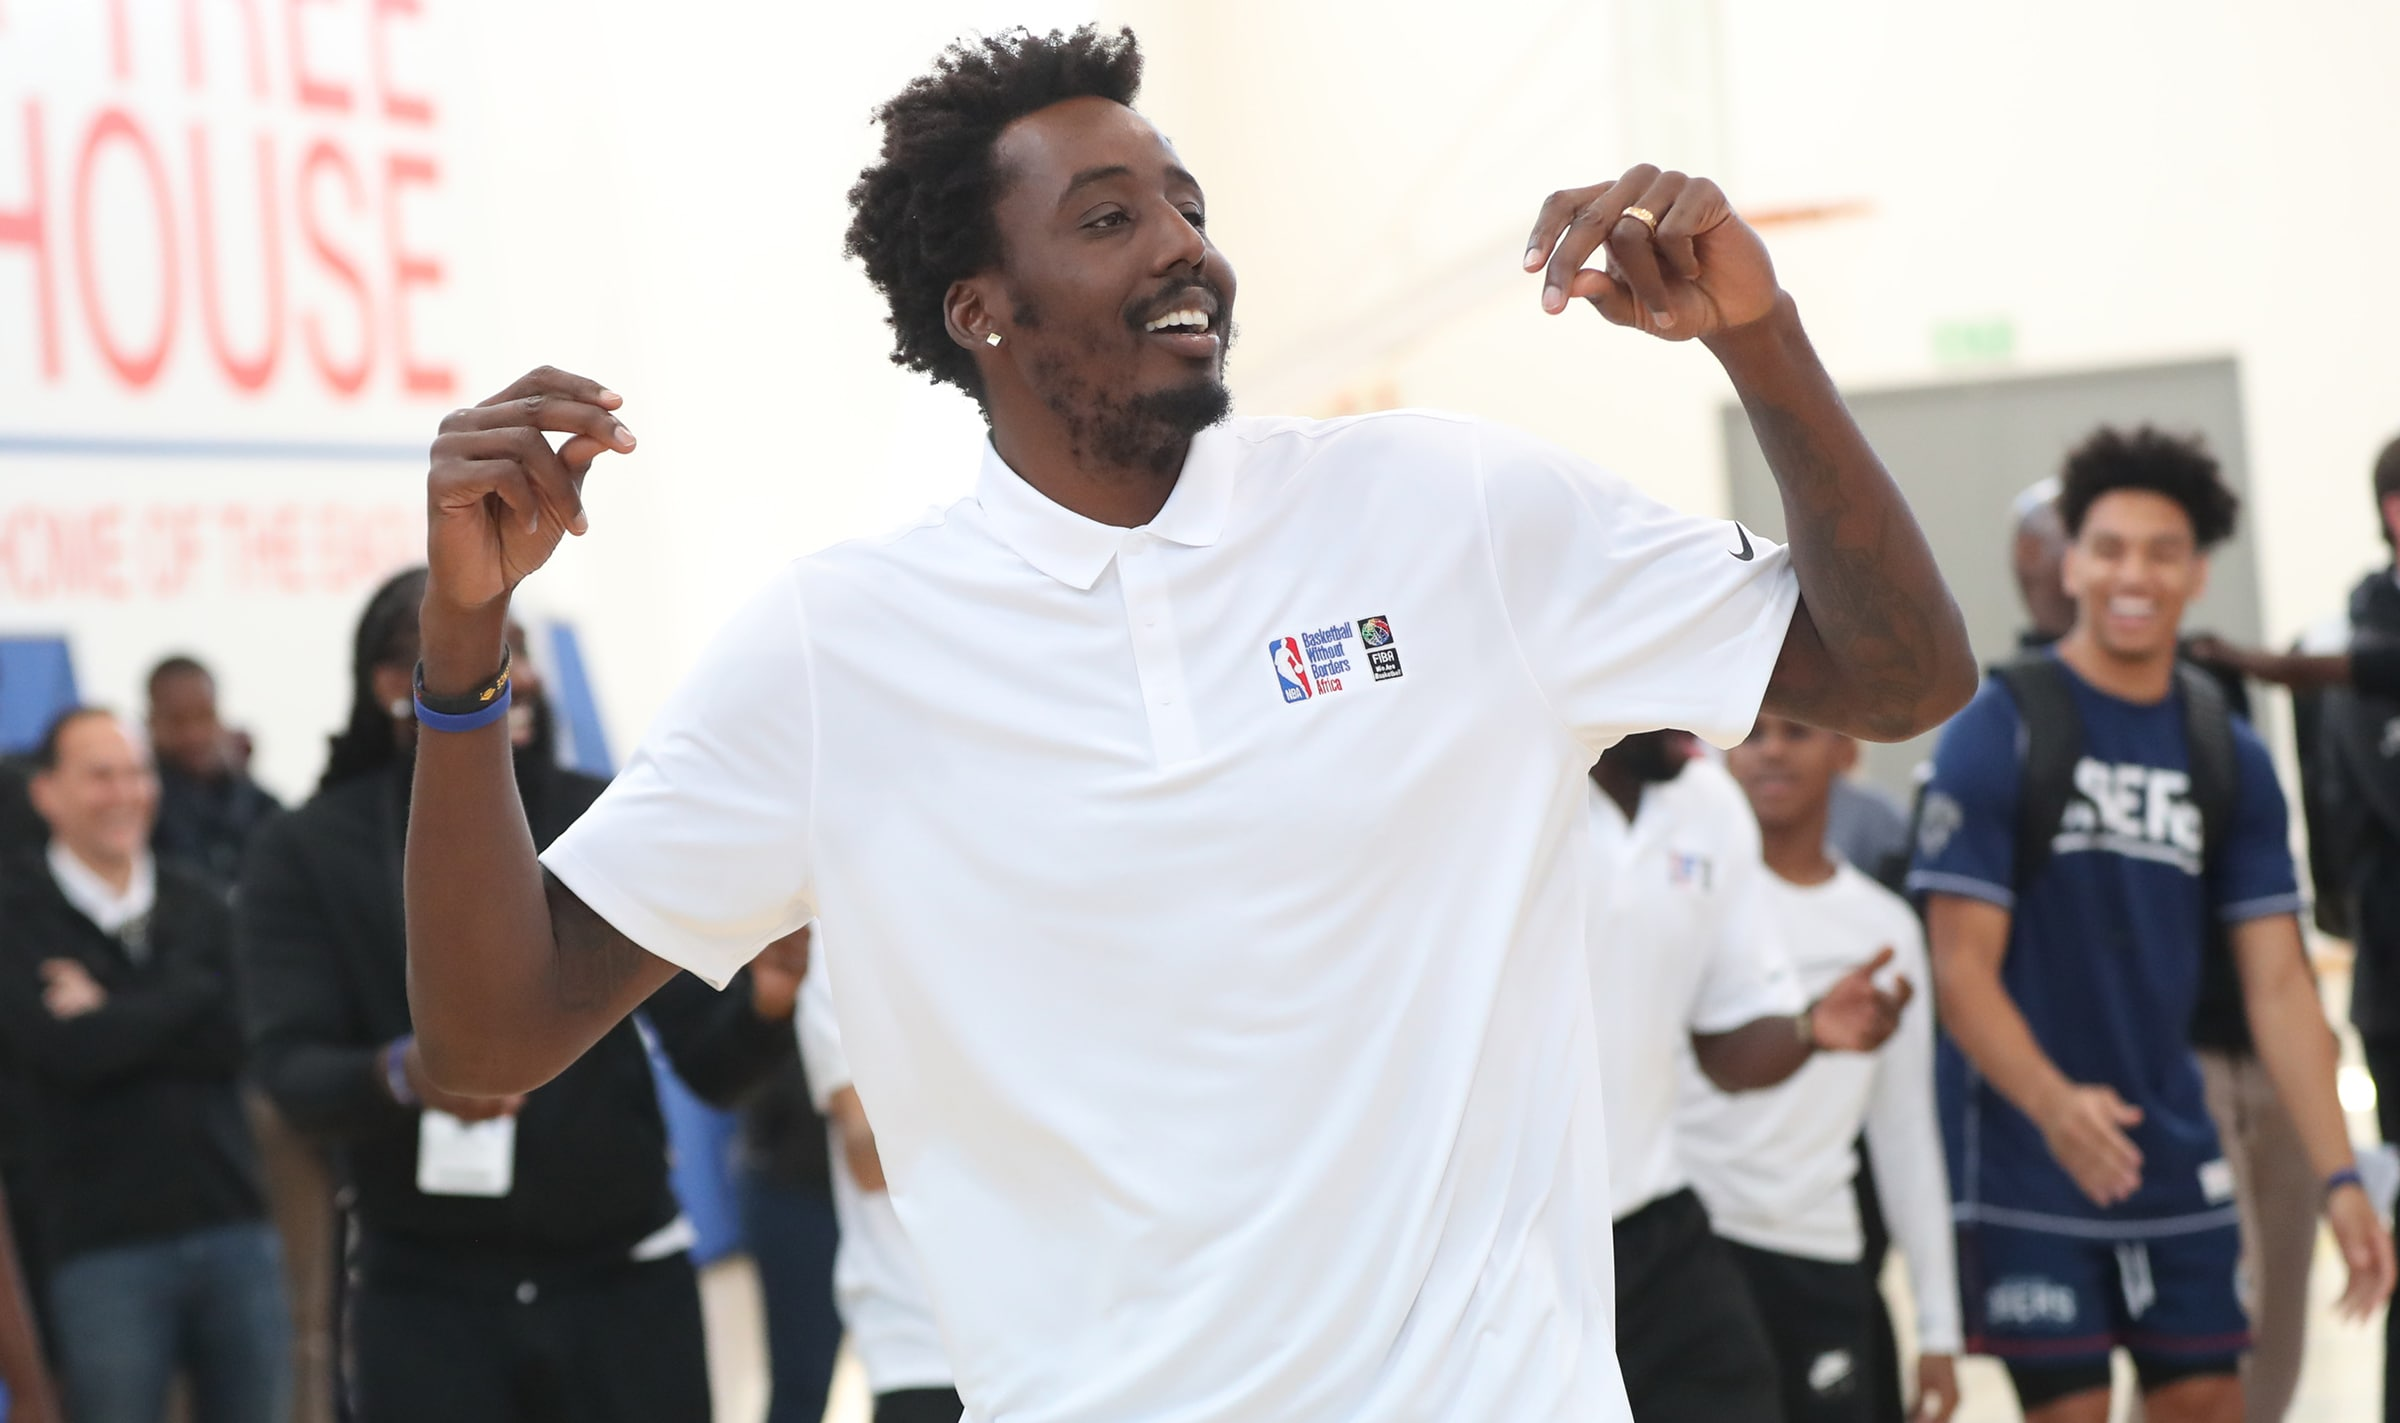 Aminu And Team Africa Fall To Team World In 2018 NBA Africa Game